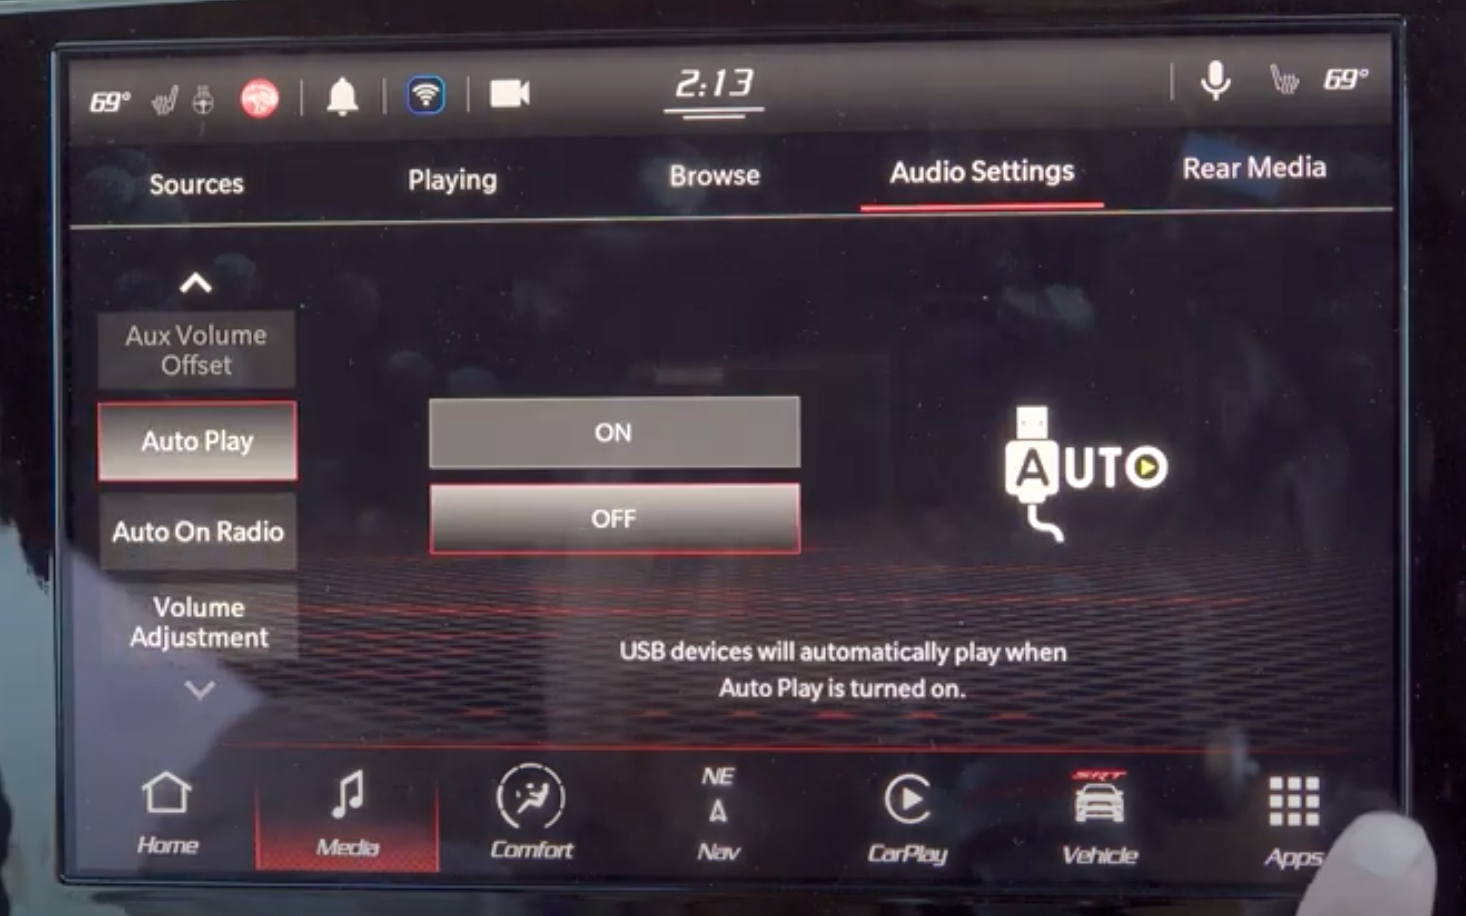 Turning on and off automatic USB devices when Auto Play feature is on